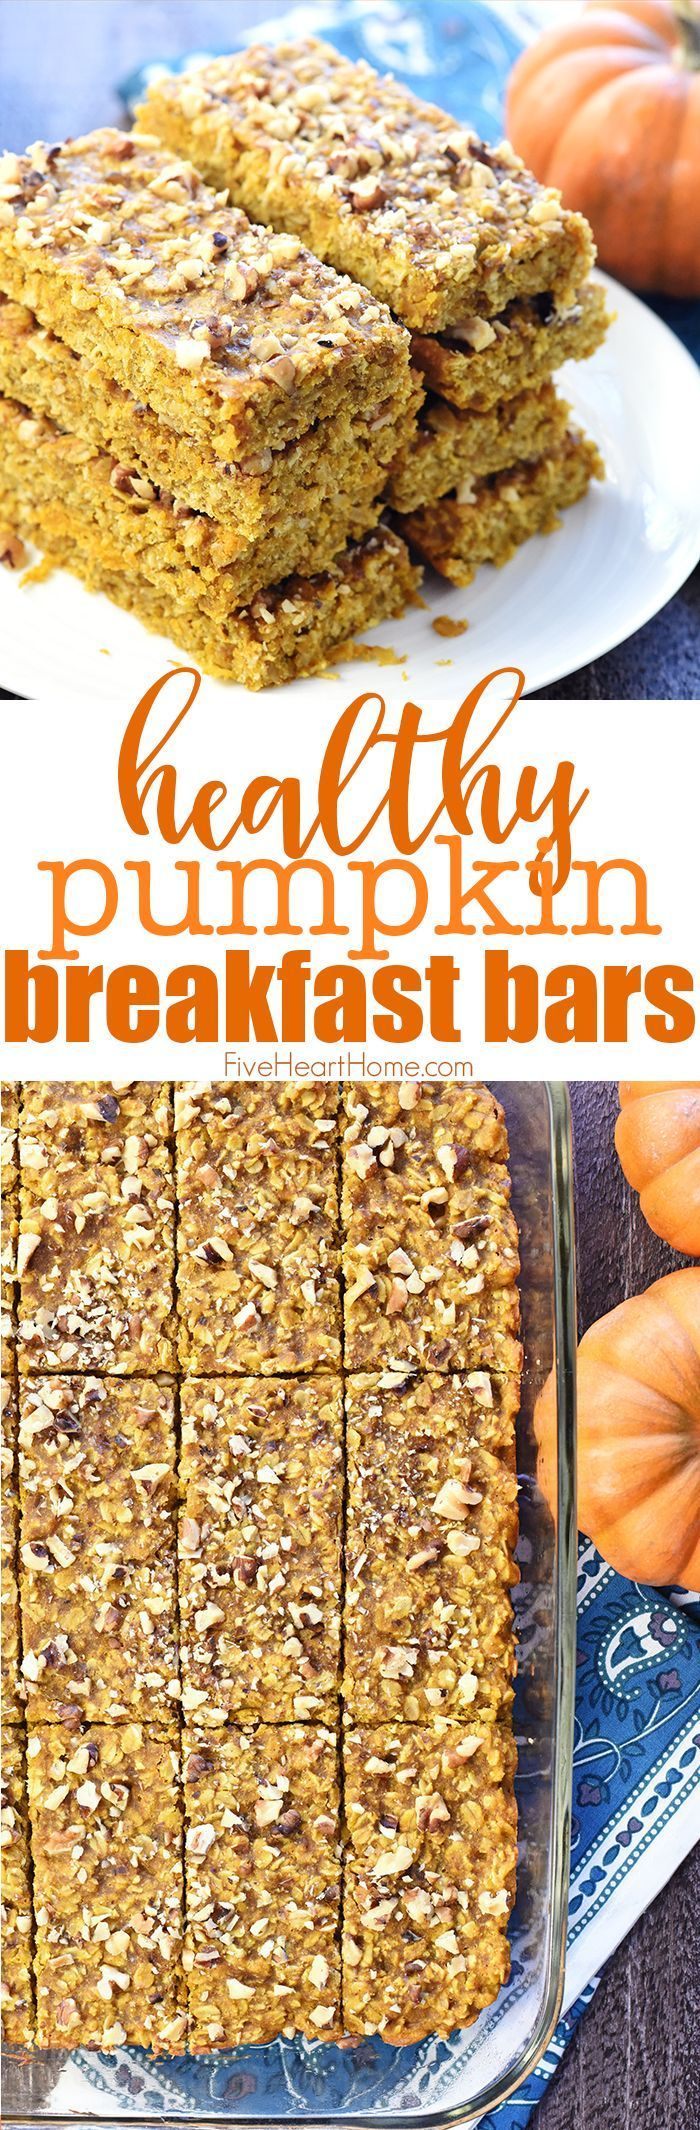 Breakfast Bars ~ soft-baked, chewy, and loaded with wholesome ingredients like oats, coconut oil, & honey for a grab-n-go breakfast or snack! |Pumpkin Breakfast Bars ~ soft-baked, chewy, and loaded with wholesome ingredients like oats, coconut oil, & honey for a grab-n-go breakfast or snack! |